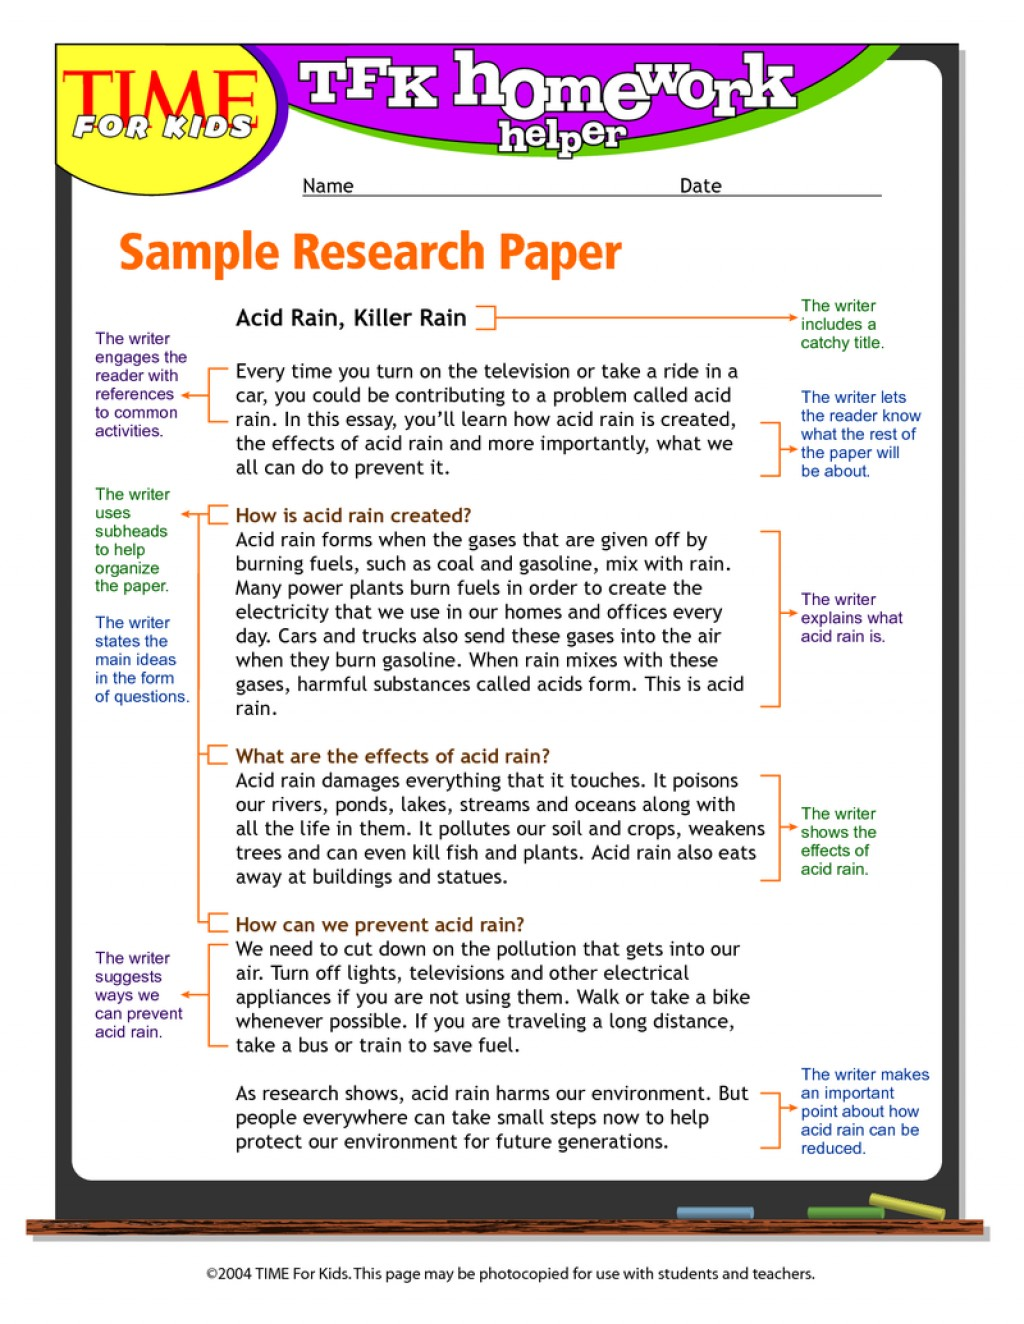 023 Research Paper Striking Writing Papers Lester 16th Edition A Complete Guide James D. Large